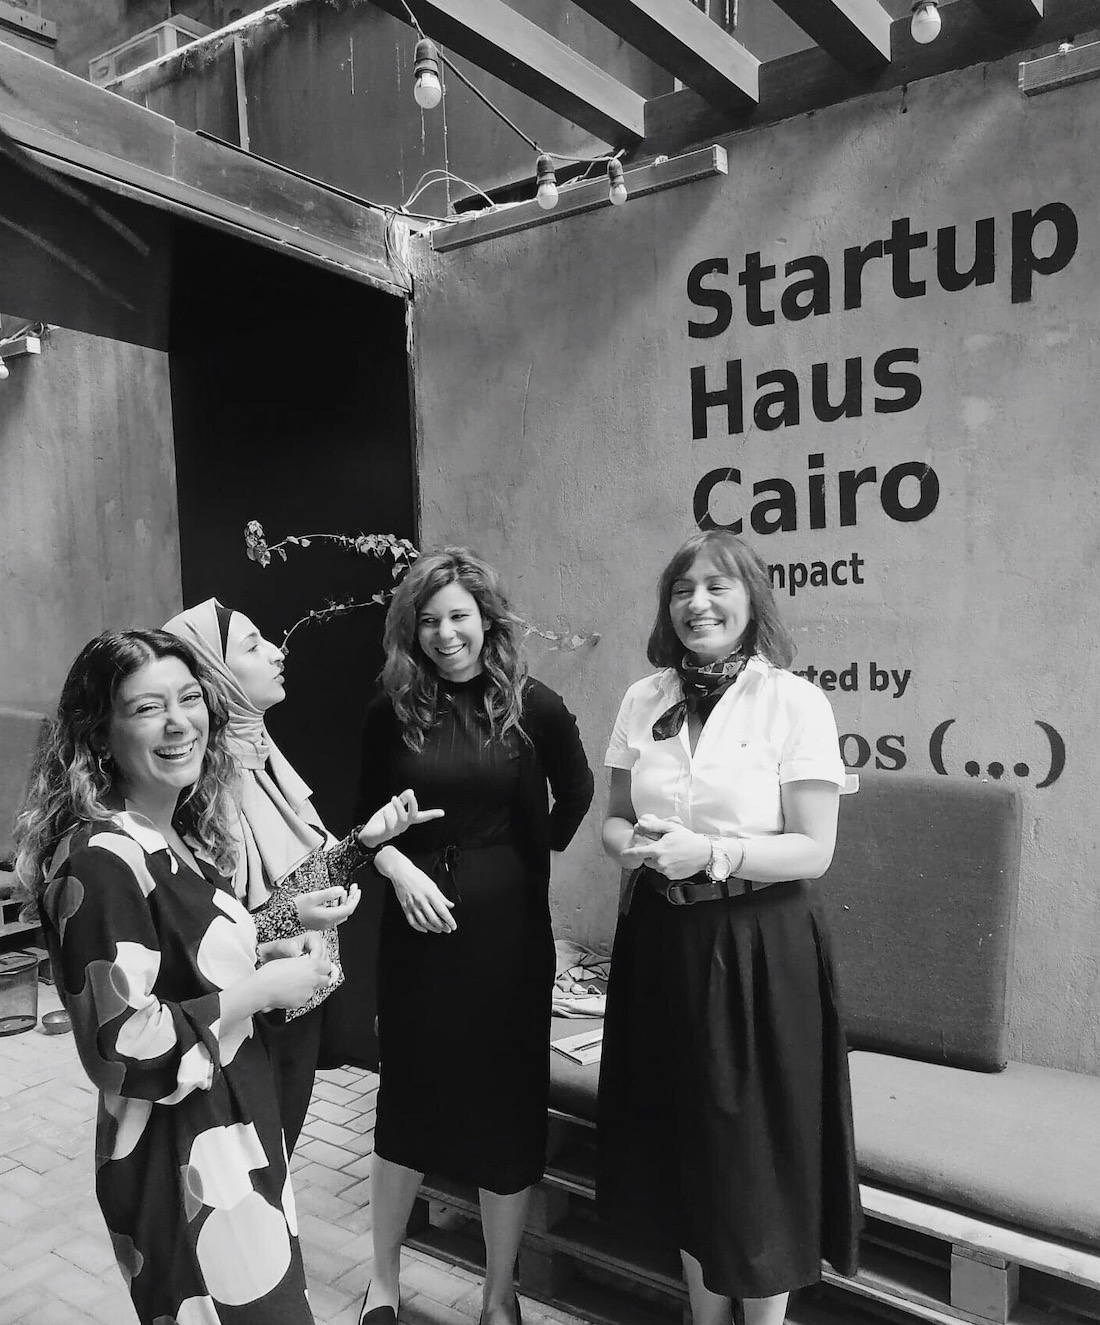 Cairo & the Super She Entrepreneurs